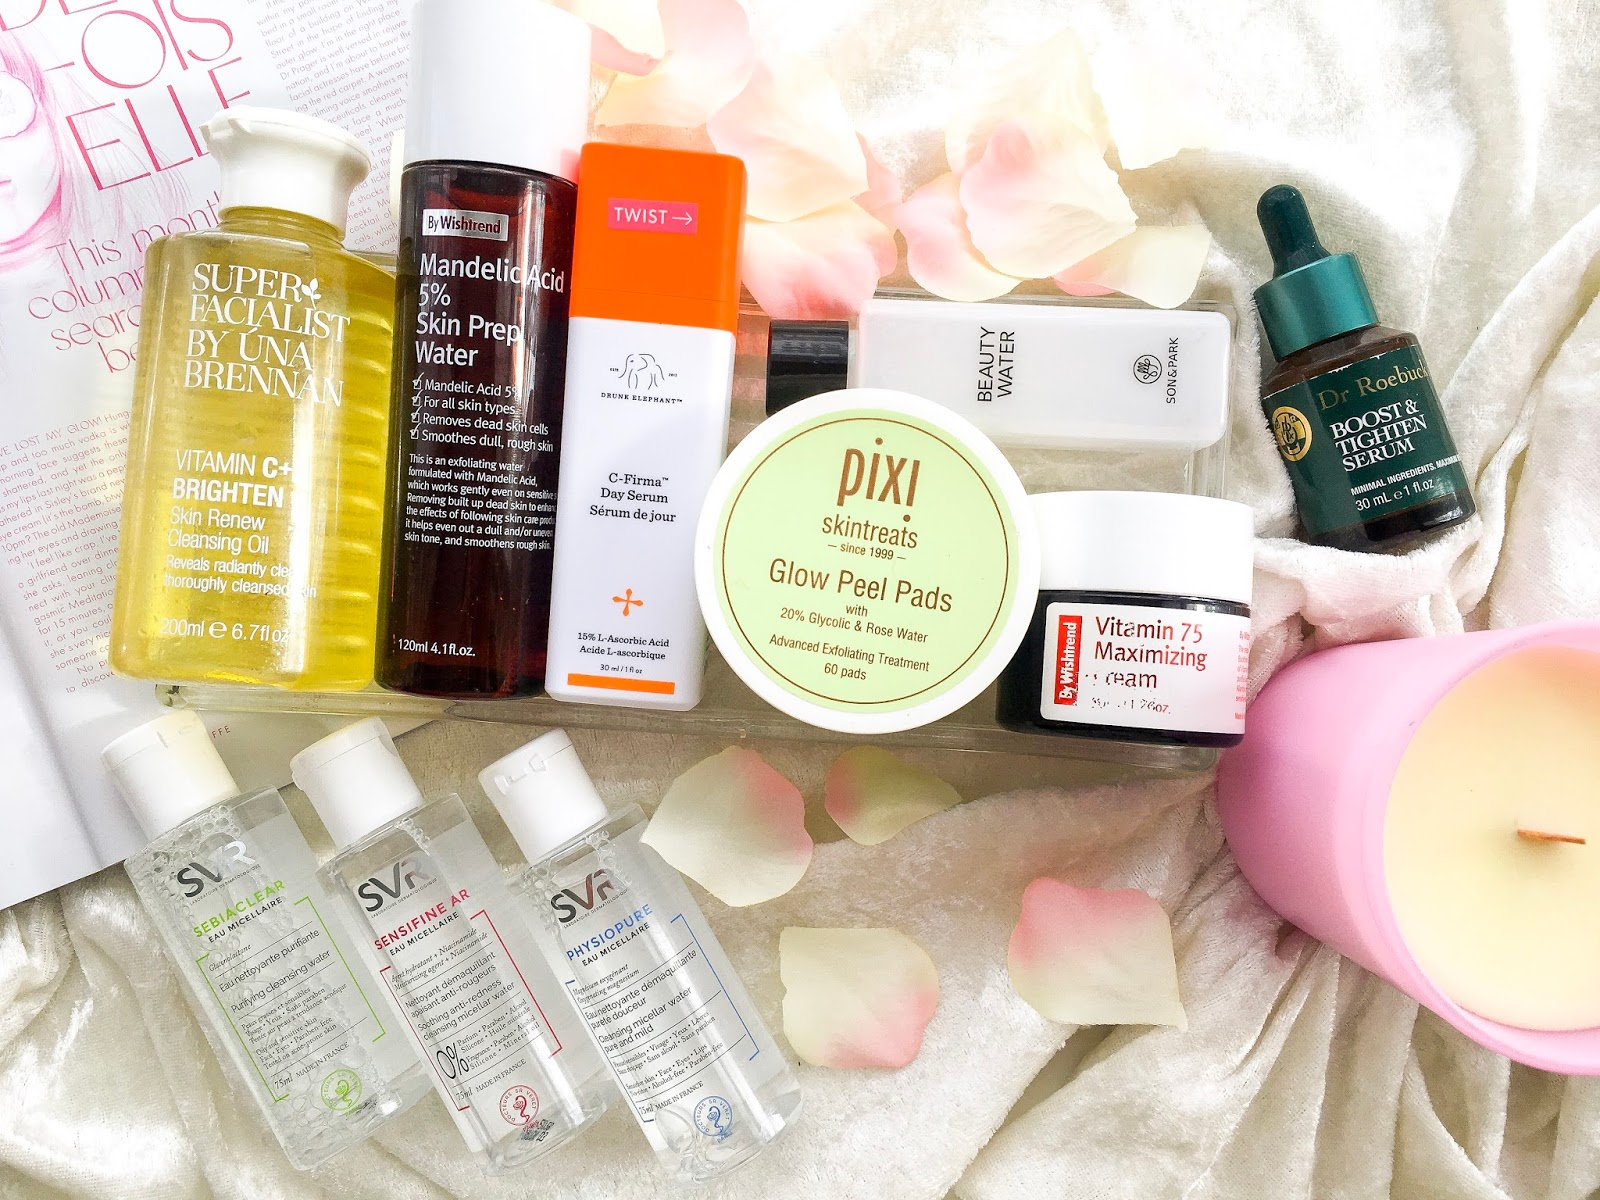 svr micellar water, wishtrend mandelic acid skin prep, drunk elephanct c firma day serum, dr roebucks boost and tighten serum, wishtrend vitamin 75 cream, pixi glow peel pads, superfacialist vitamin c cleansing oil, son and park beauty water,